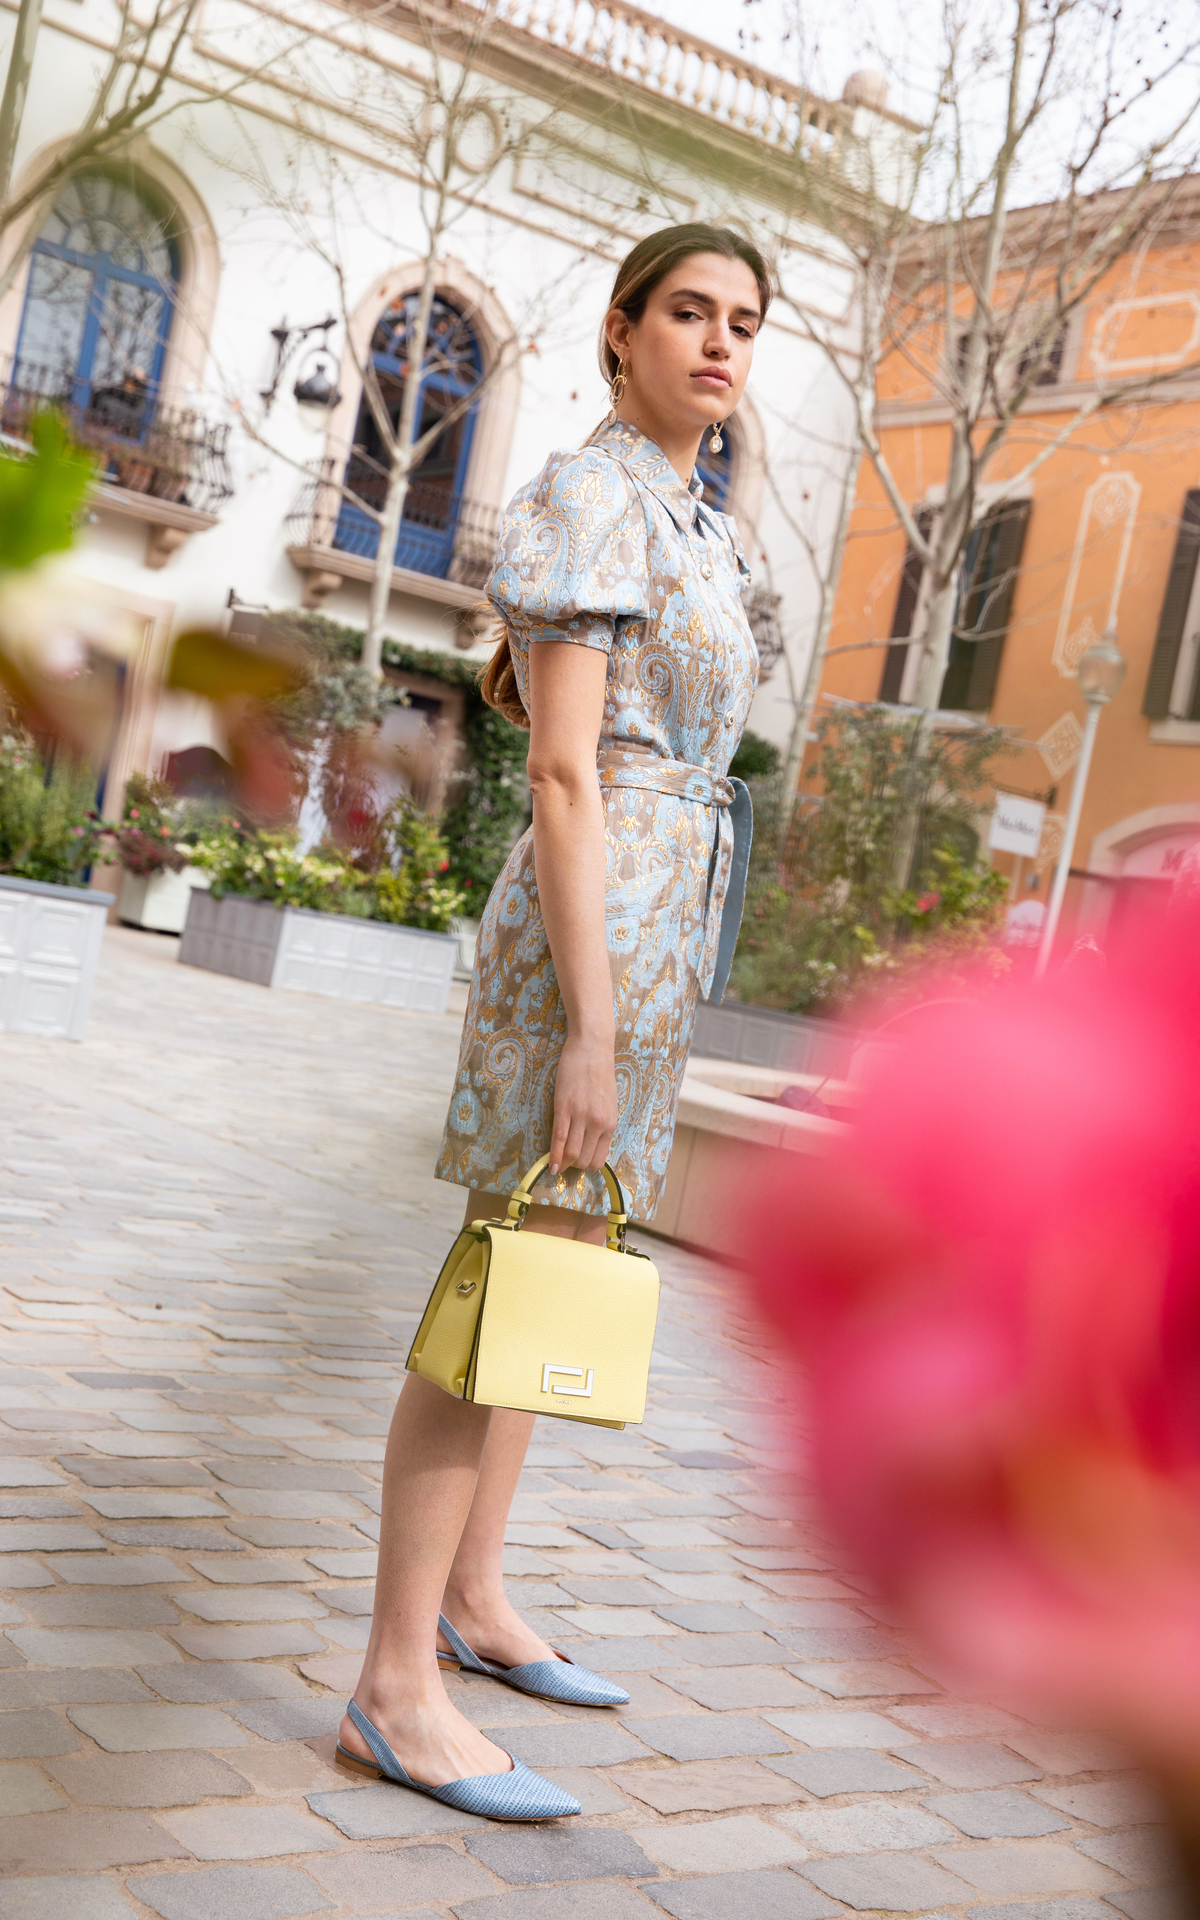 Woman with a printed baby blue dress holding a yellow bag